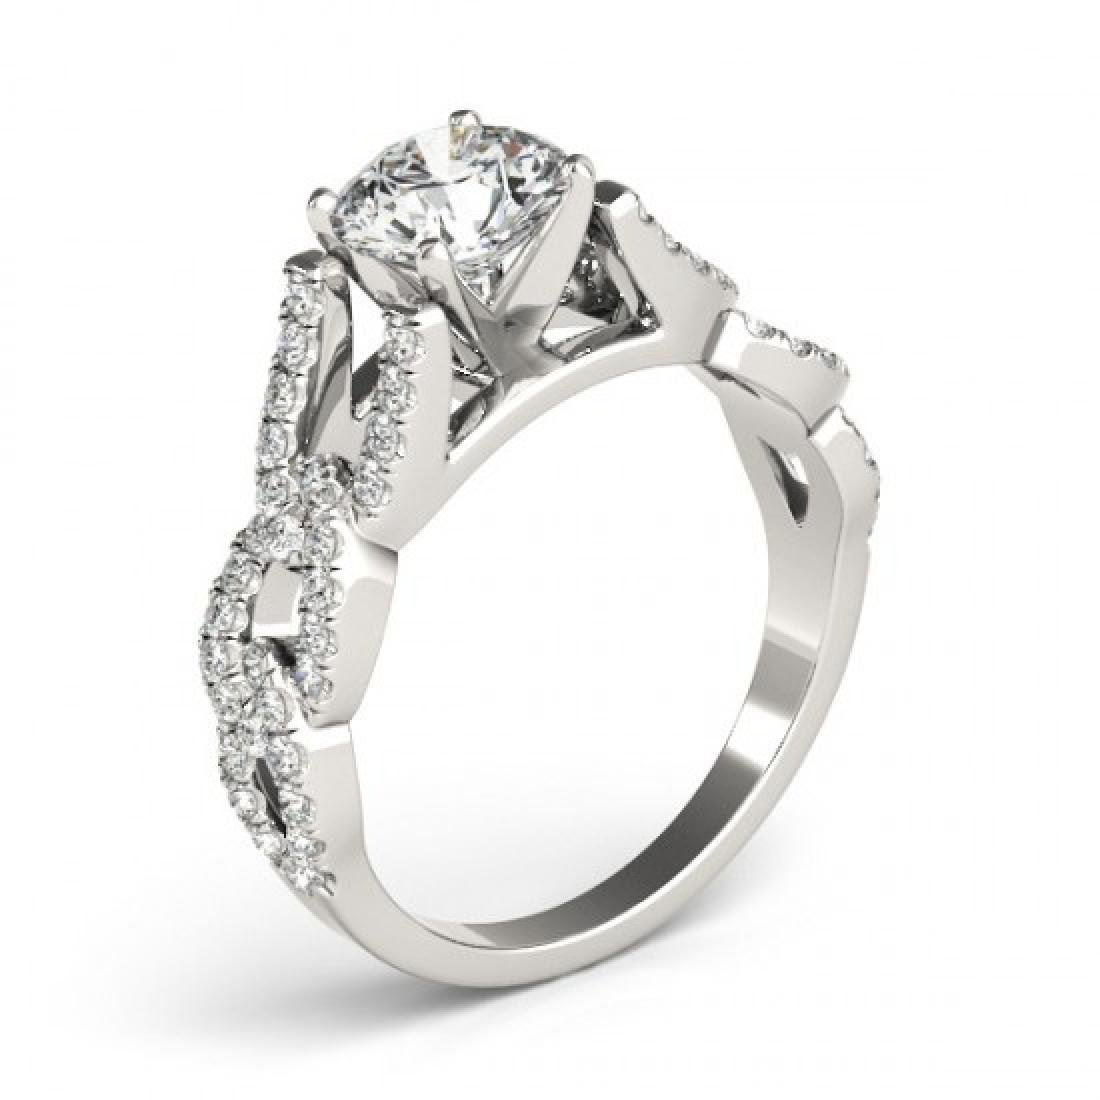 1.5 CTW Certified VS/SI Diamond Solitaire Ring 14K - 3